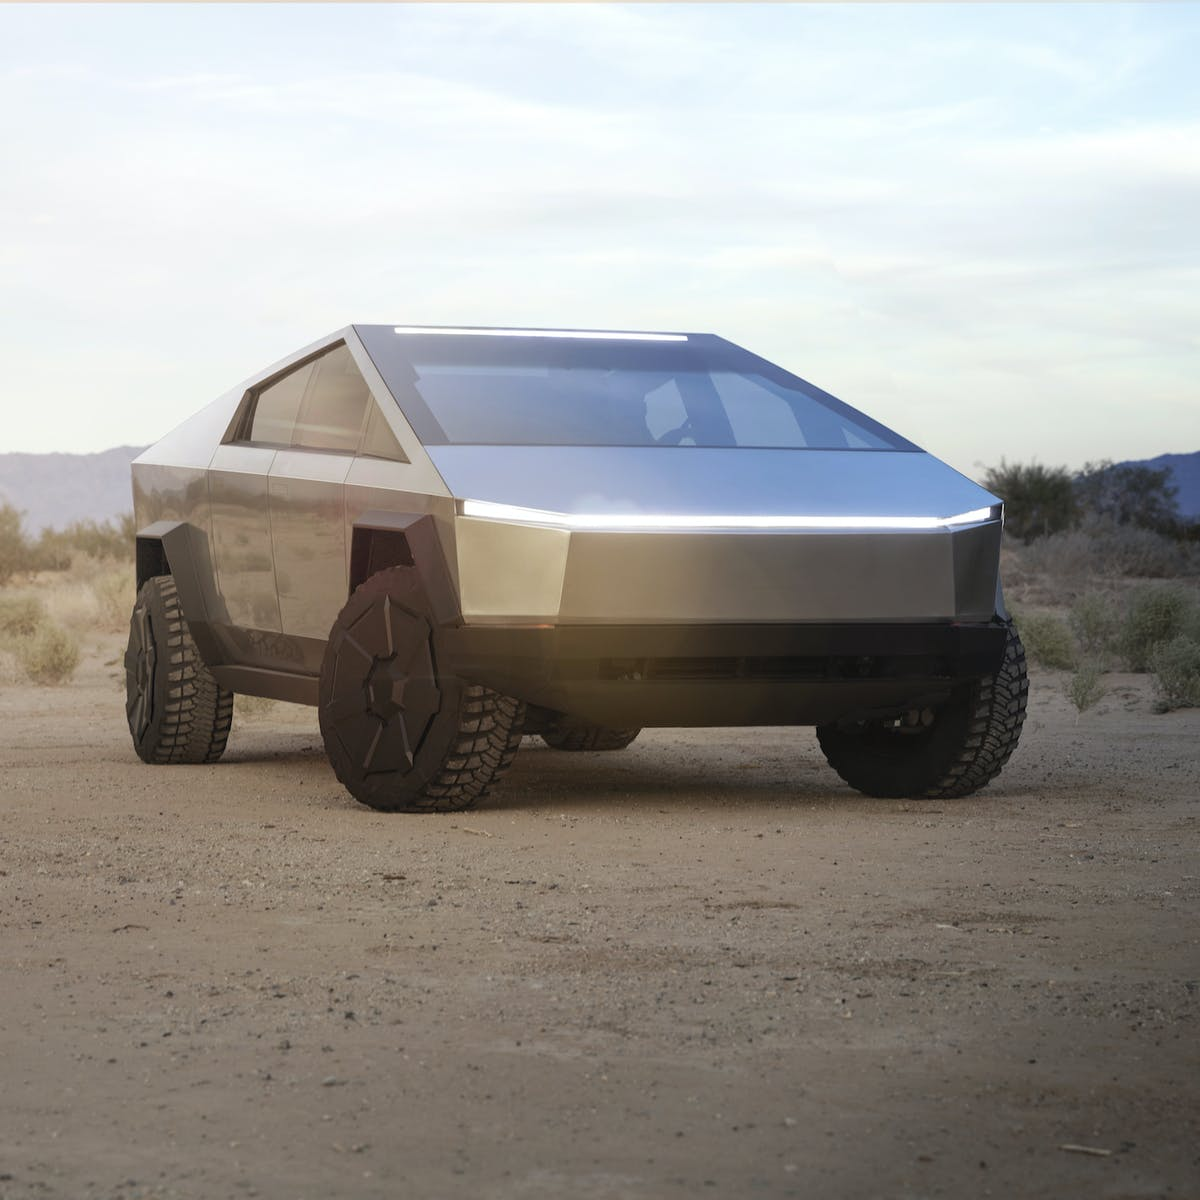 Tesla Cybertruck: 20 coolest photos and videos of the striking pickup truck